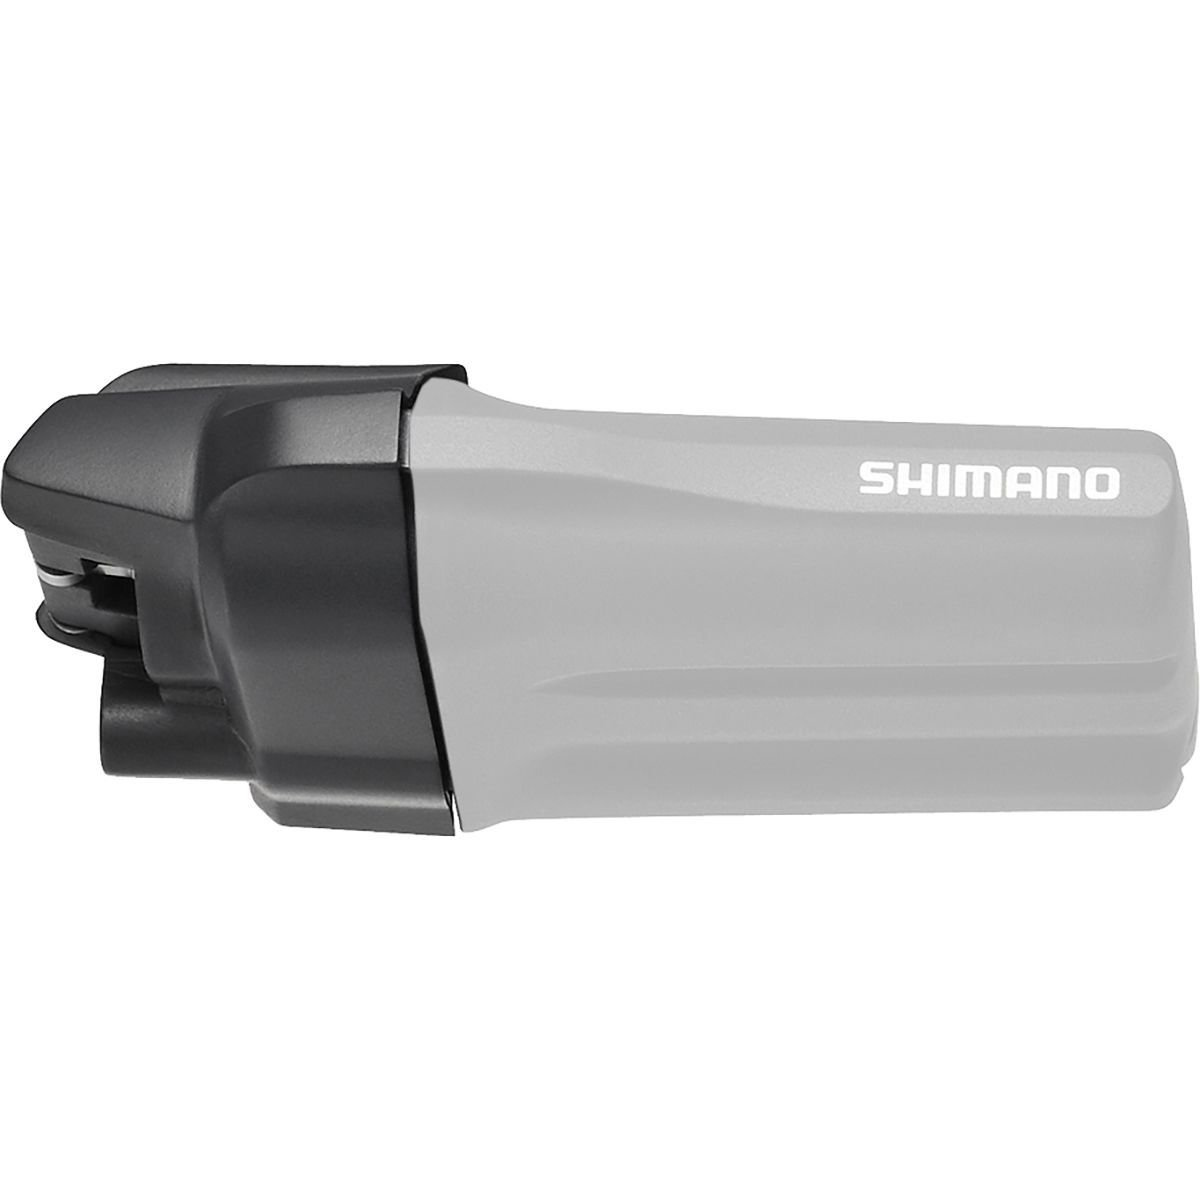 SHIMANO BM-DN100 Di2 Battery Mount Short, Int/Ext Wiring, M4x16 Bolts by SHIMANO